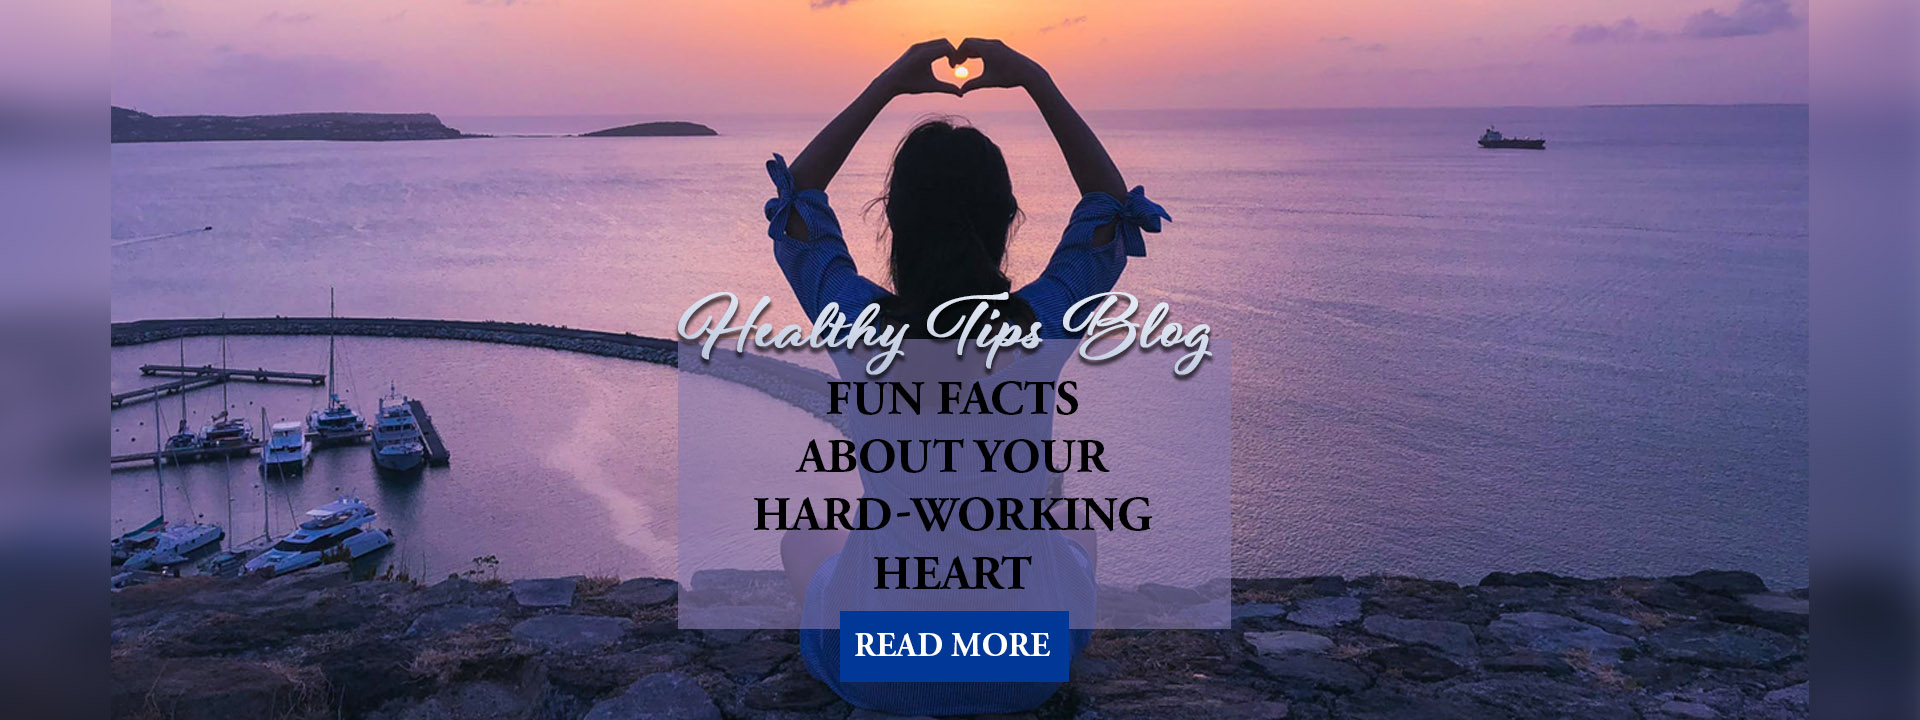 tips for keeping heart healthy